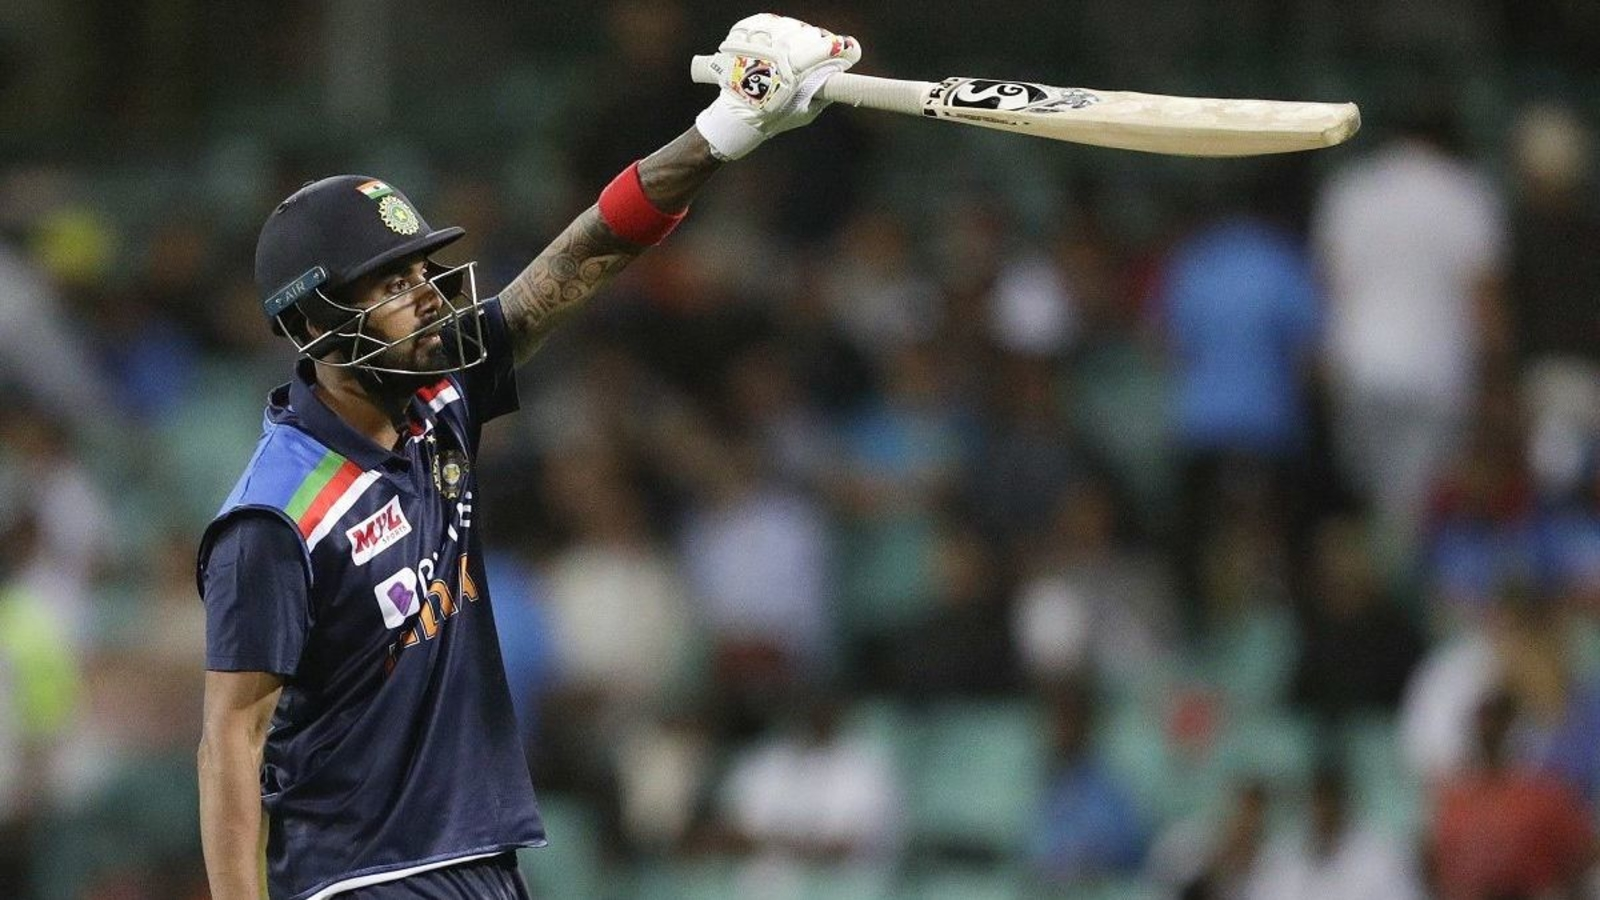 ICC T20I Rankings: KL Rahul firm at 2nd spot, Kohli moves to 6th - Hindustan Times